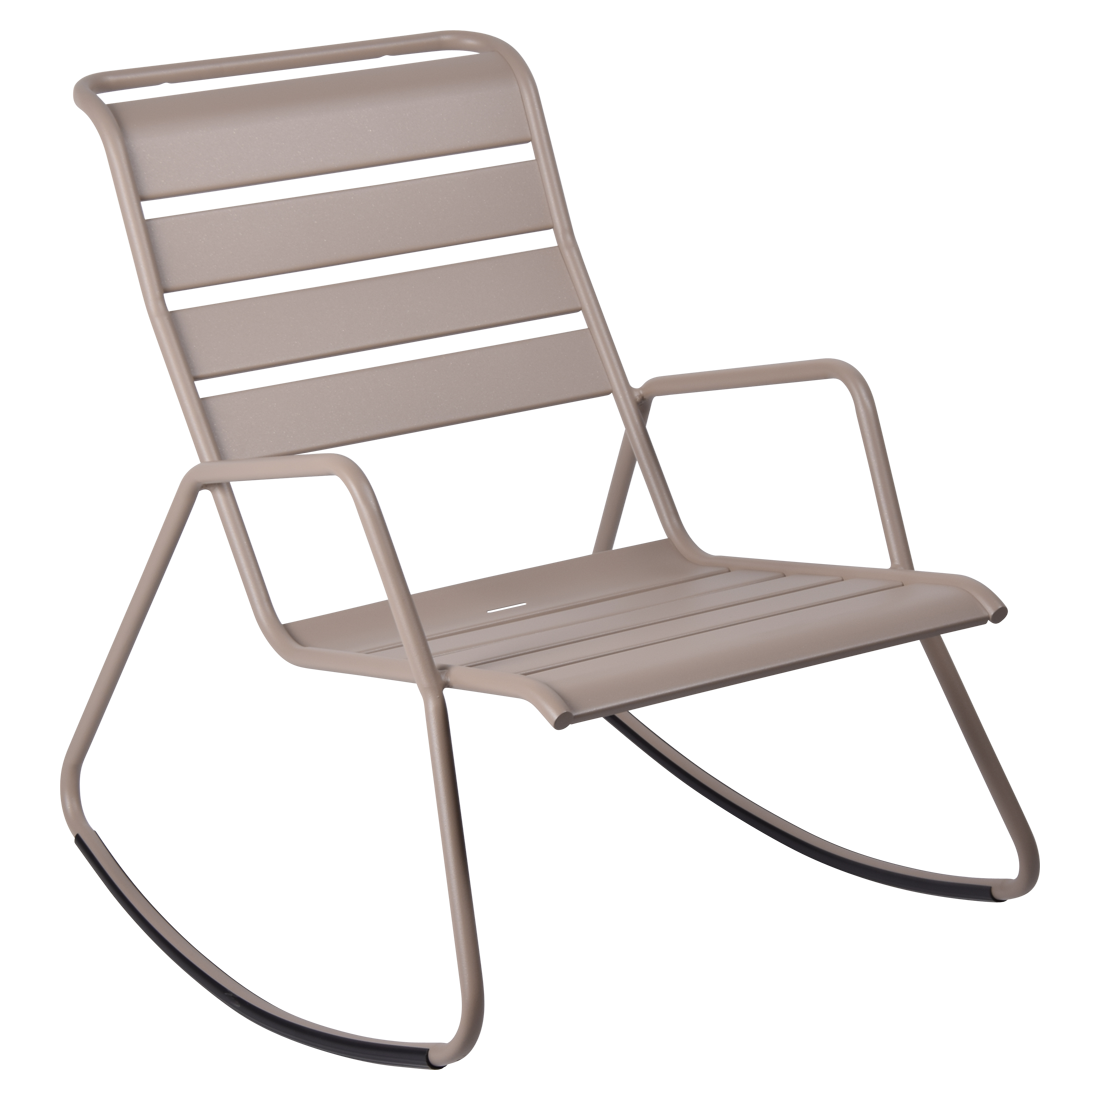 rocking chair metal, rocking chair fermob, rocking chair jardin, rocking chair beige